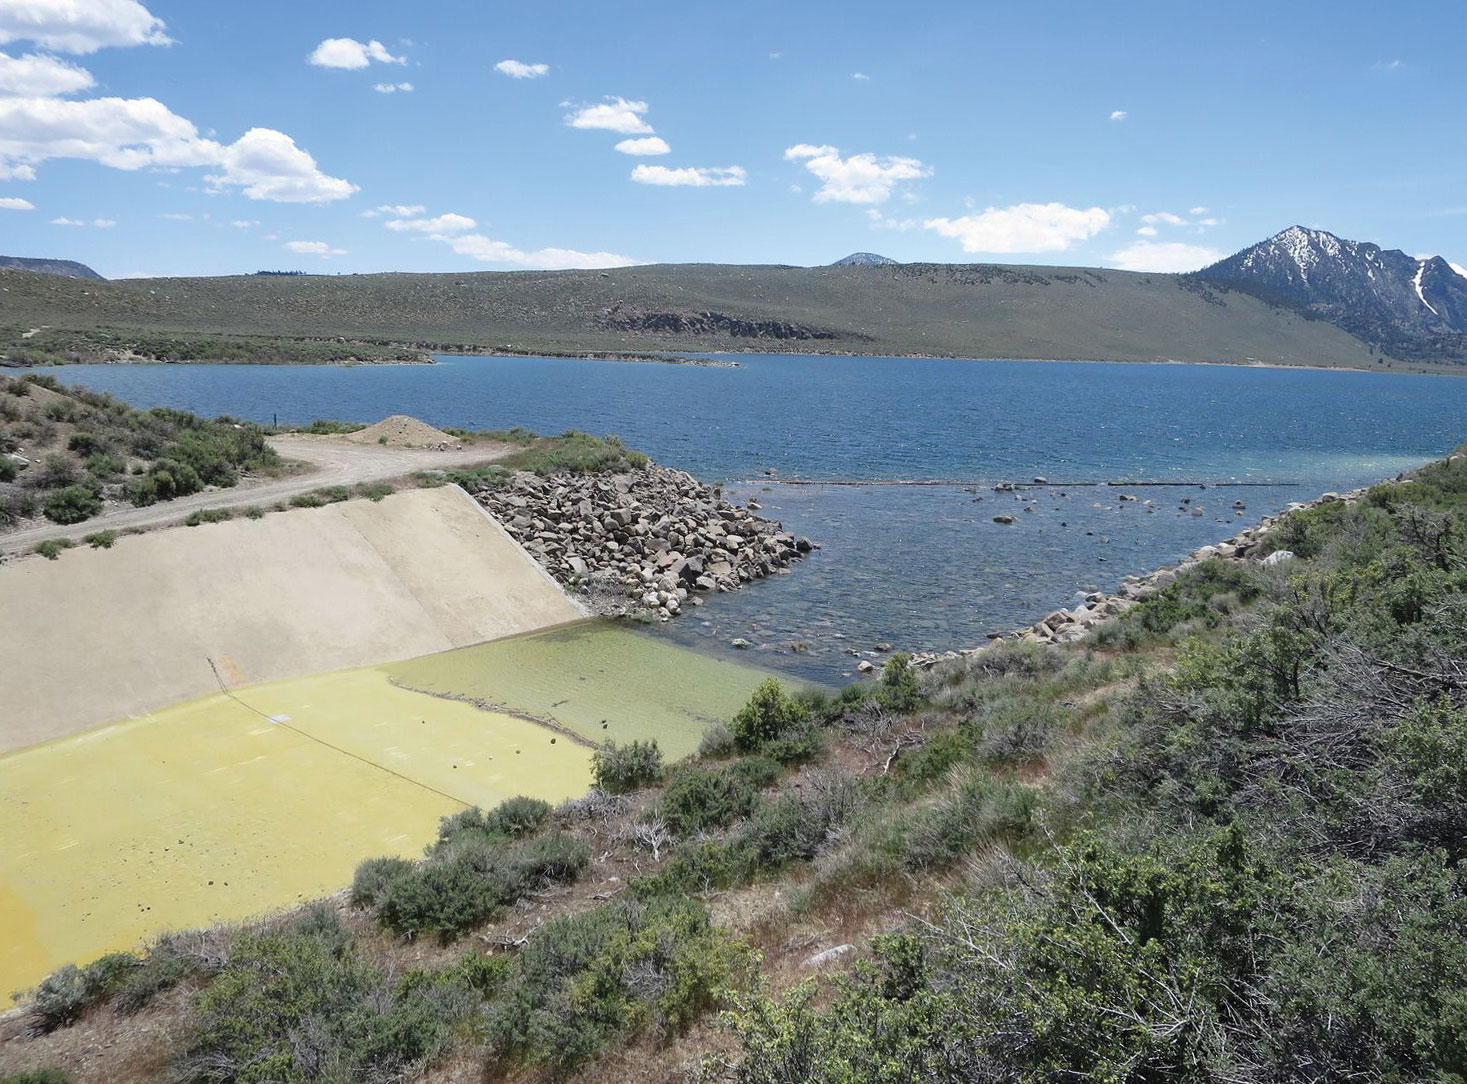 Overflow spillway from Grant Lake Reservoir. hoto courtesy of the Mono Lake Committee